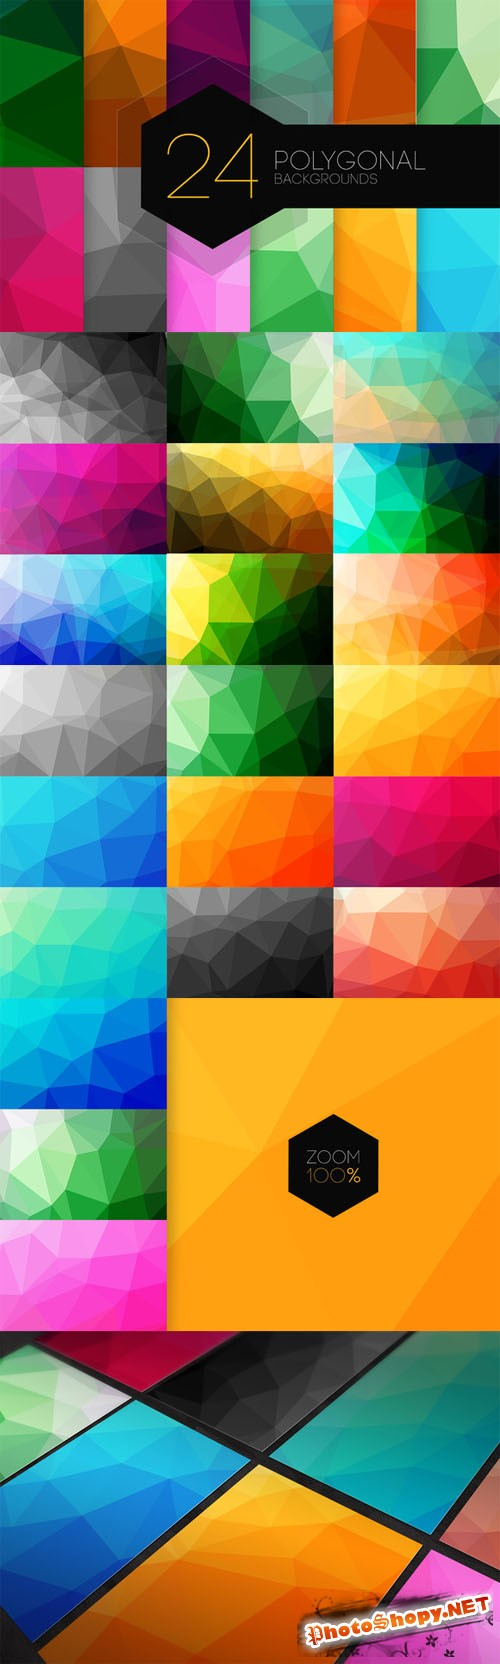 24 Polygonal Backgrounds - Creativemarket 93065